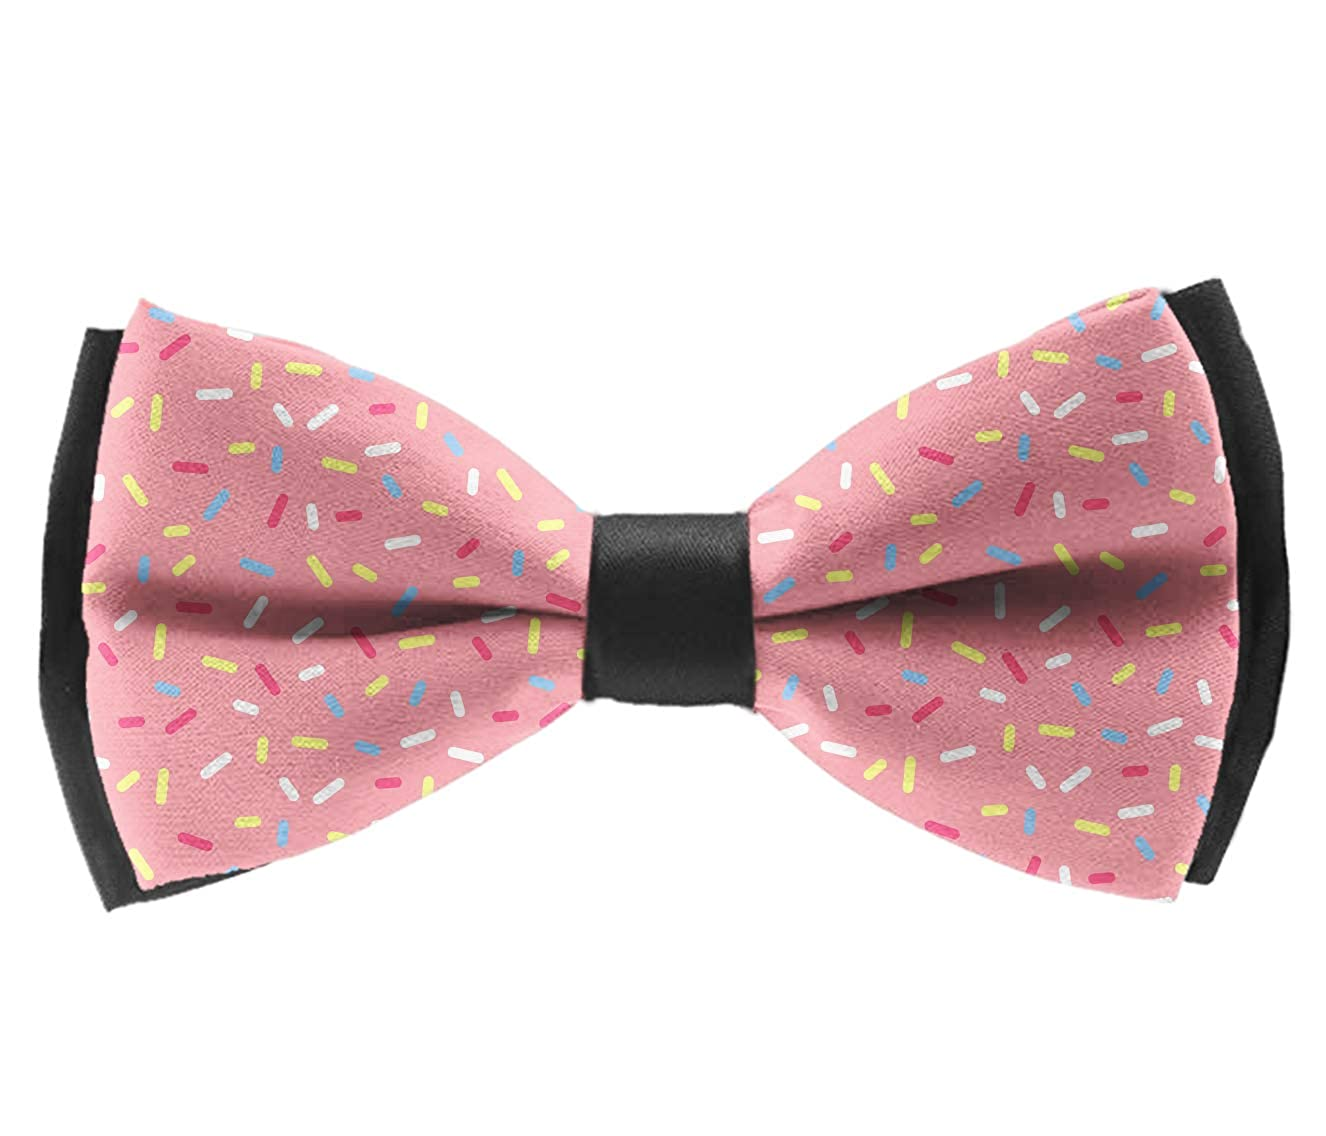 Satin Bowties Donut Seamless Pre-Tied Formal Neckwear Necktie